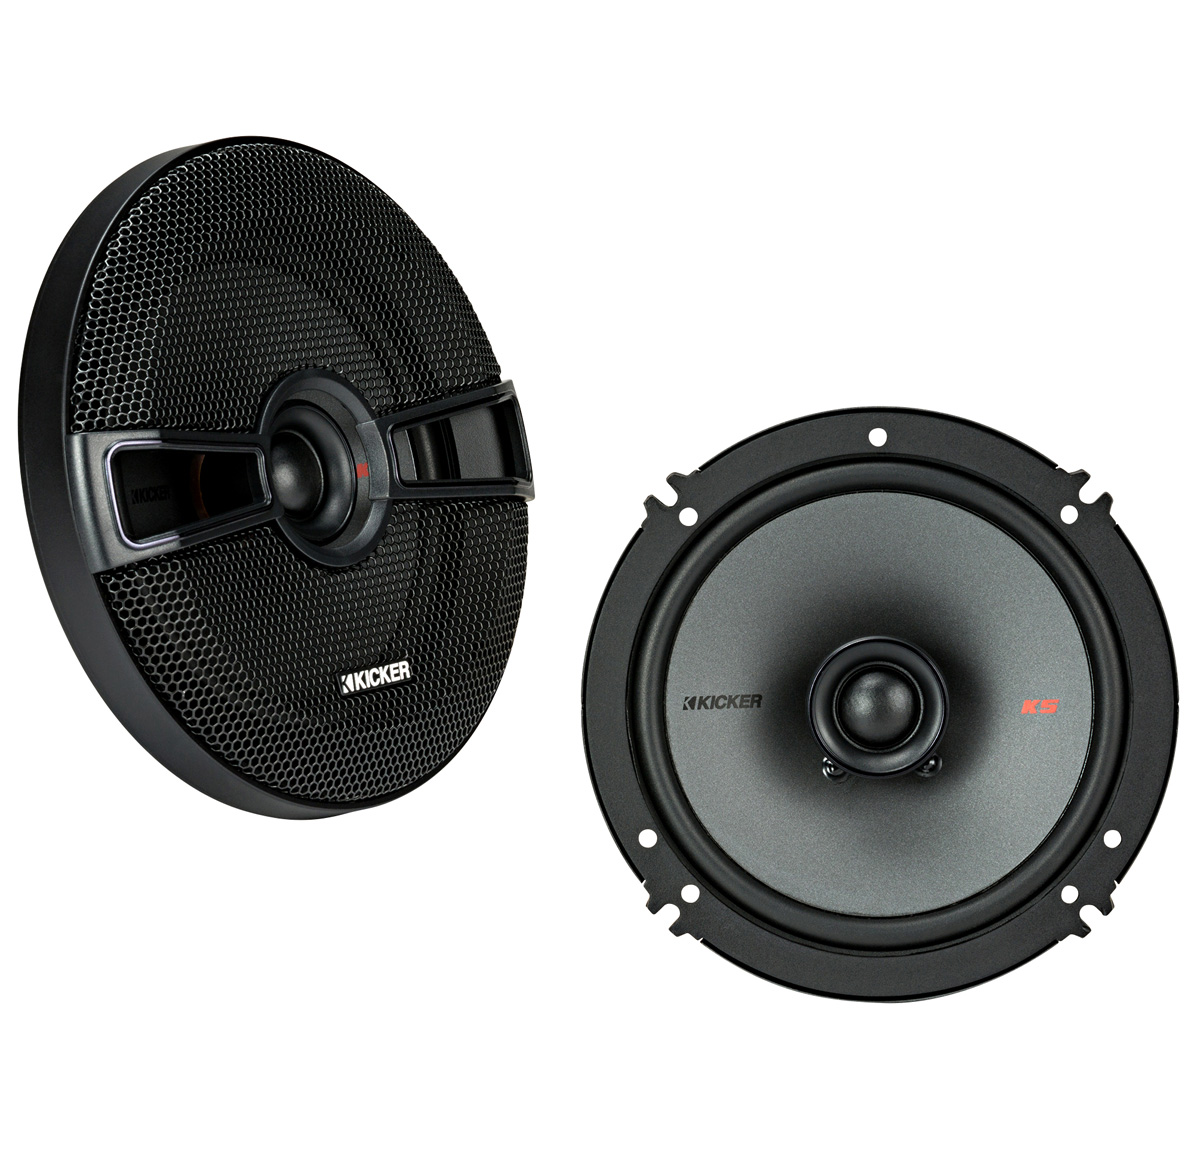 "KICKER 44KSC6504 6.5"" (160mm) Coax Spkrs w/.75""(20mm) tweeters, 4ohm, RoHS Compliant"